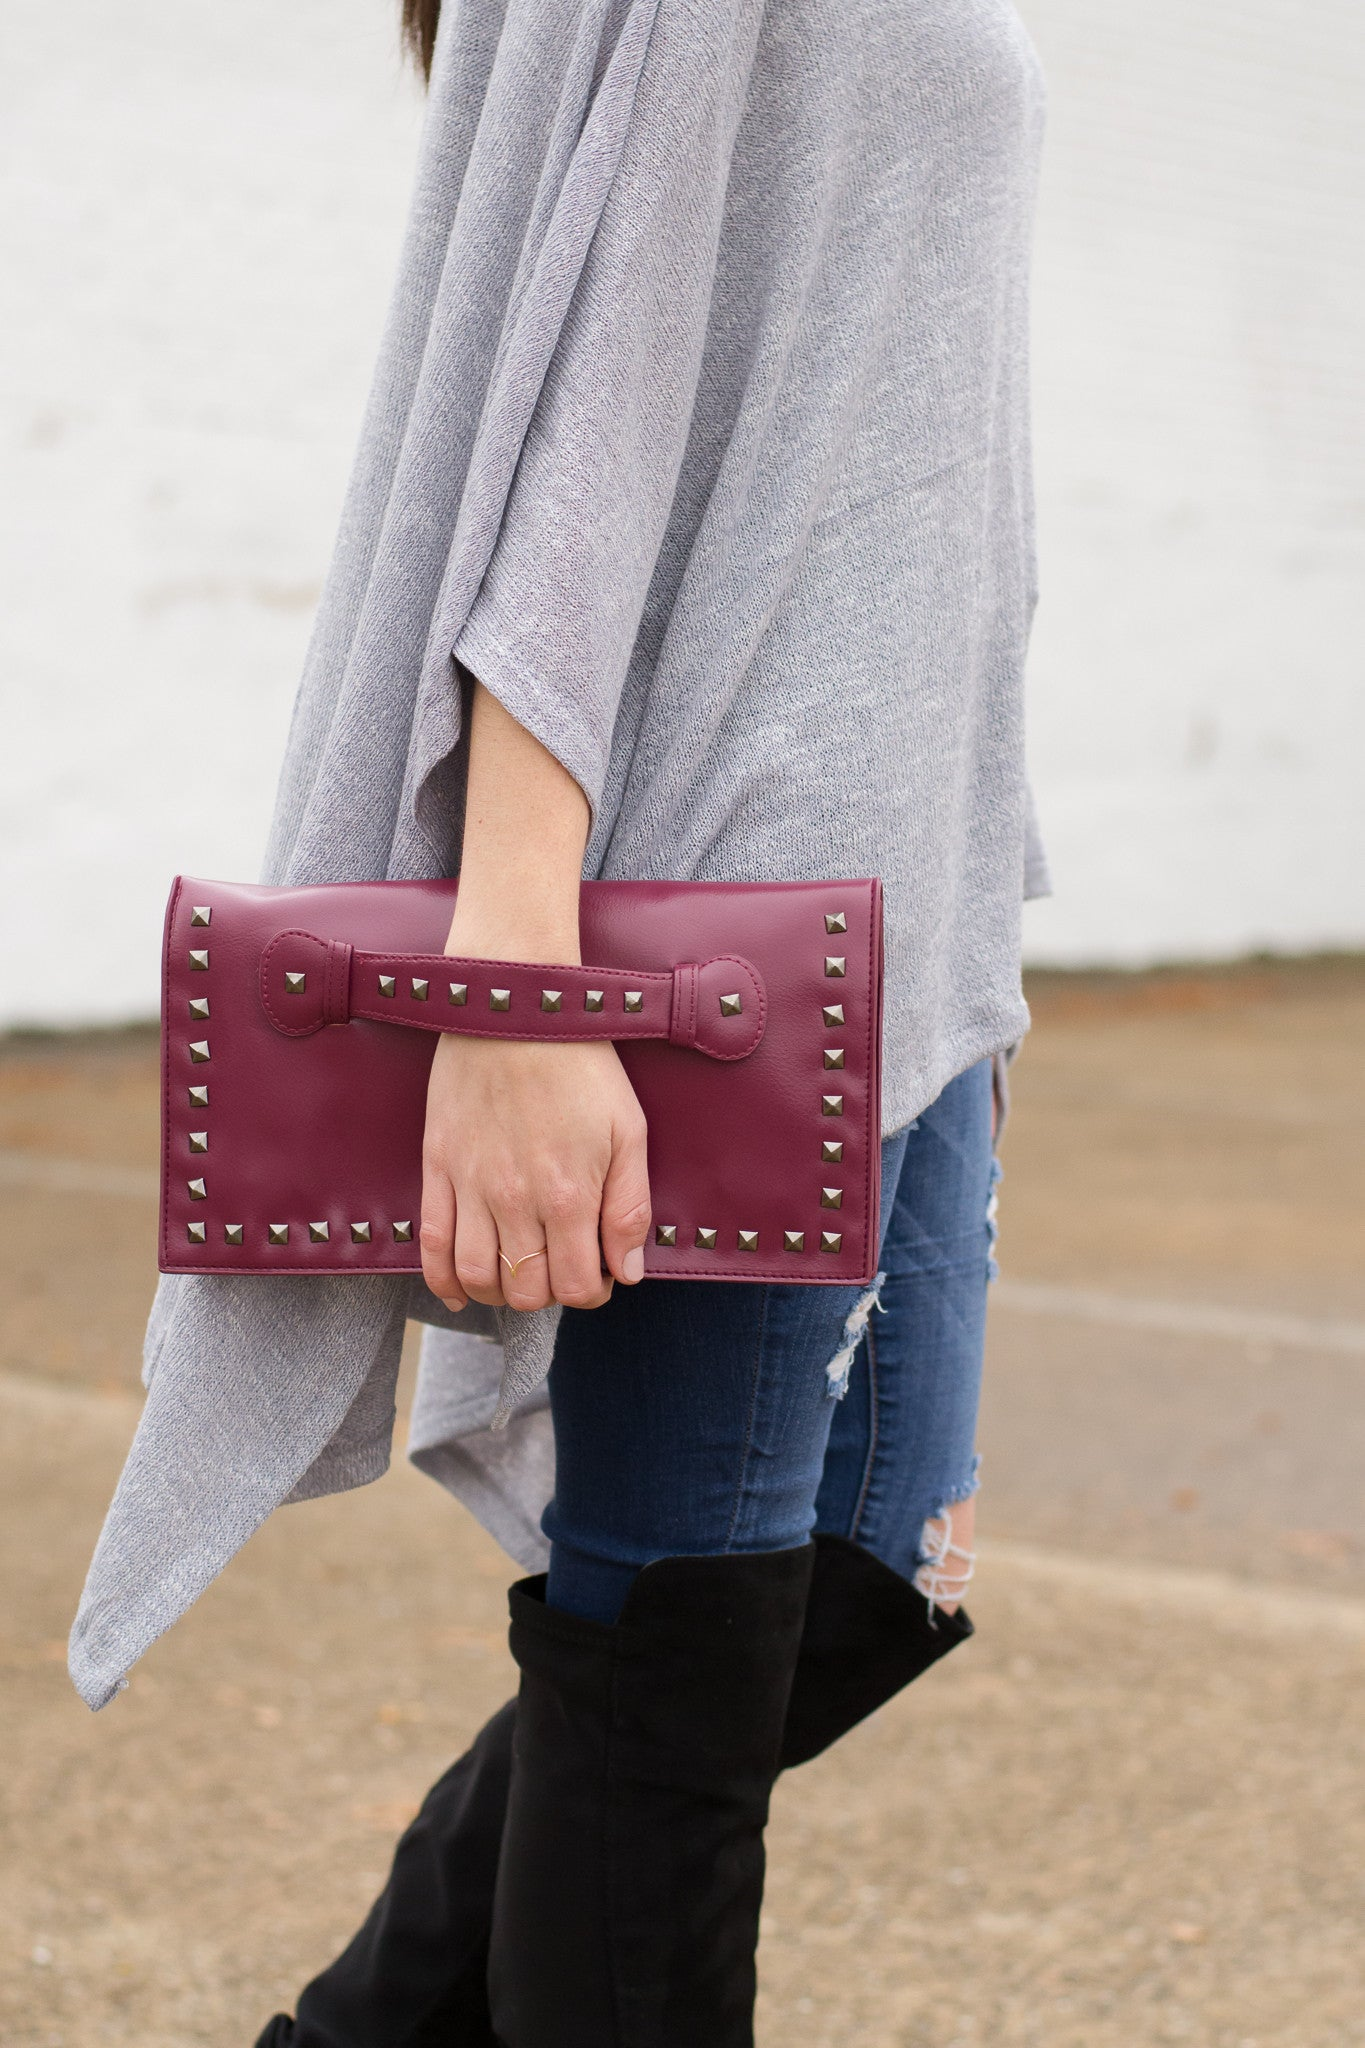 Burgundy Clutch with Metal Hardware Detailing